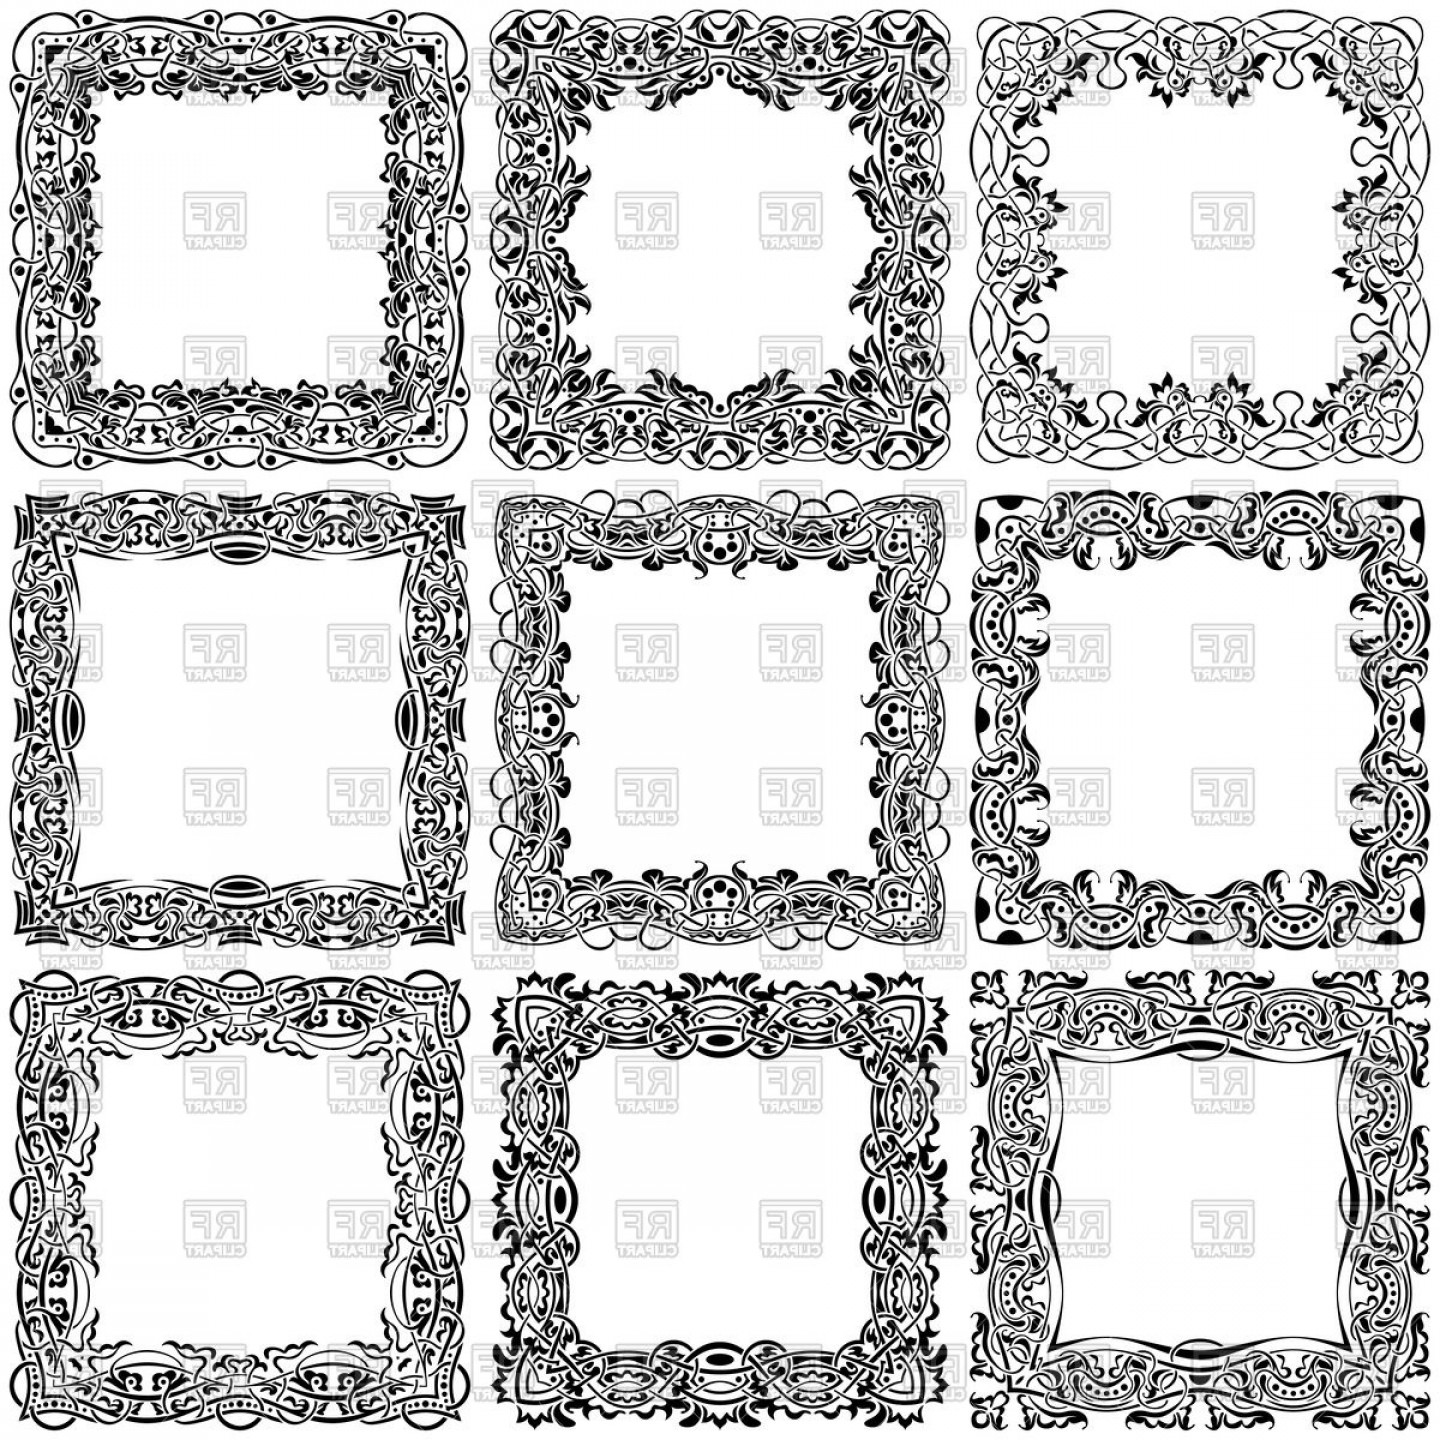 Square Black Vector Border Frame: Big Set Of Square Vintage Ornamental Frames Vector Clipart